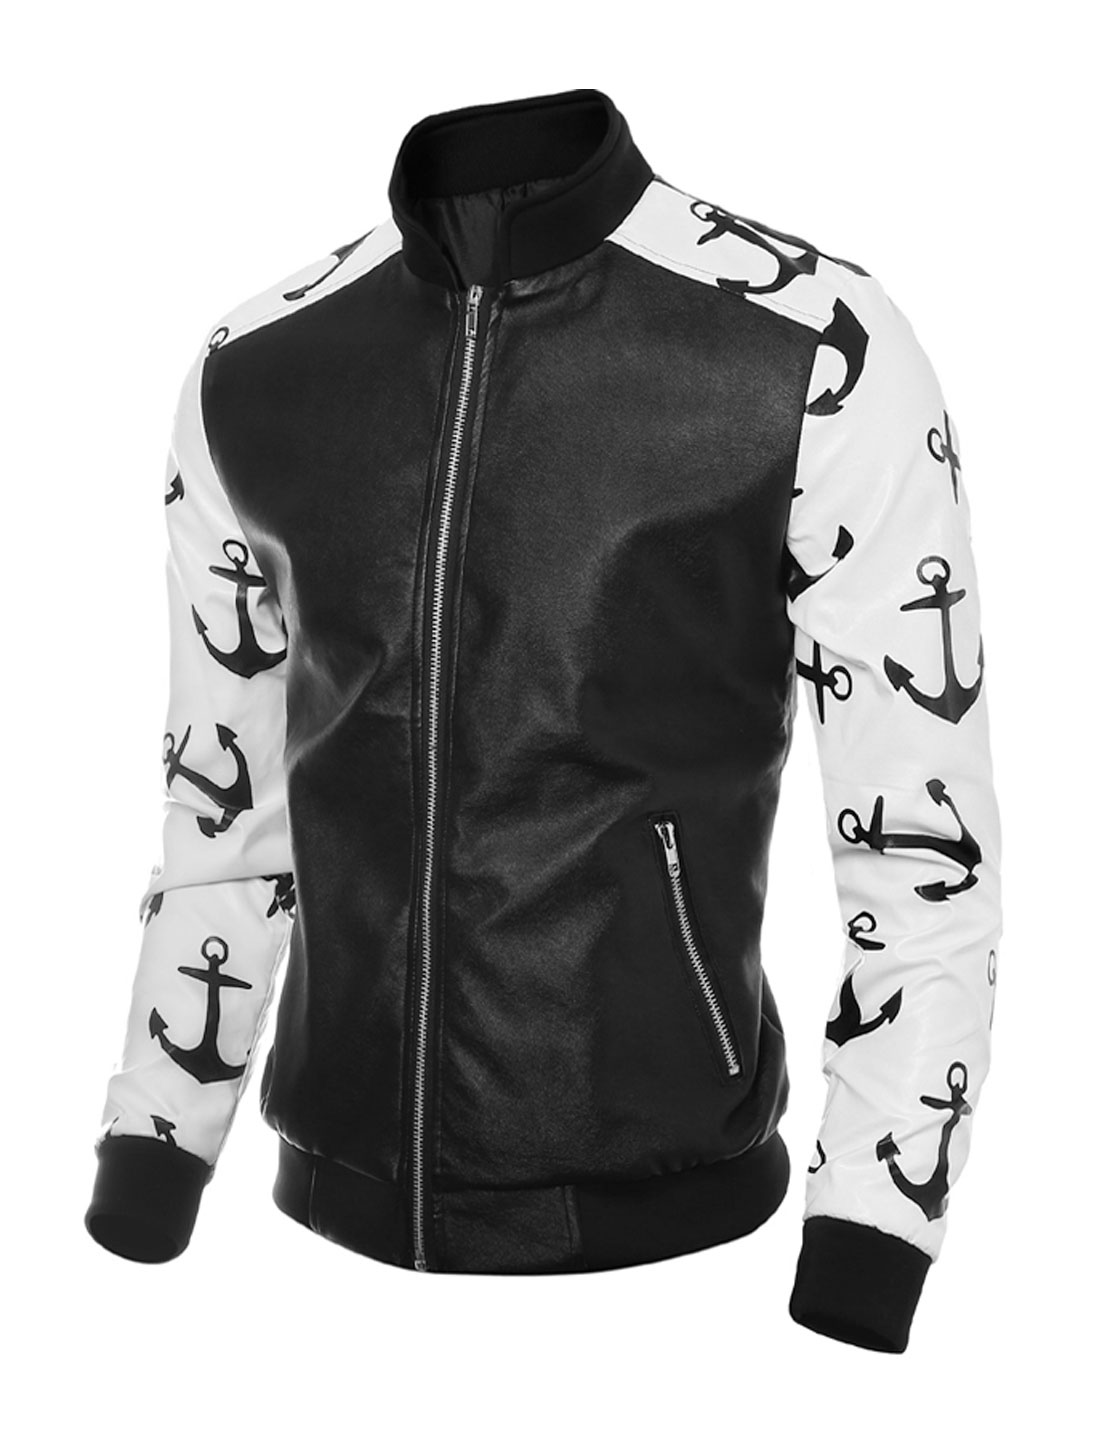 Man Contrast Color Anchors PU Jacket White Black M